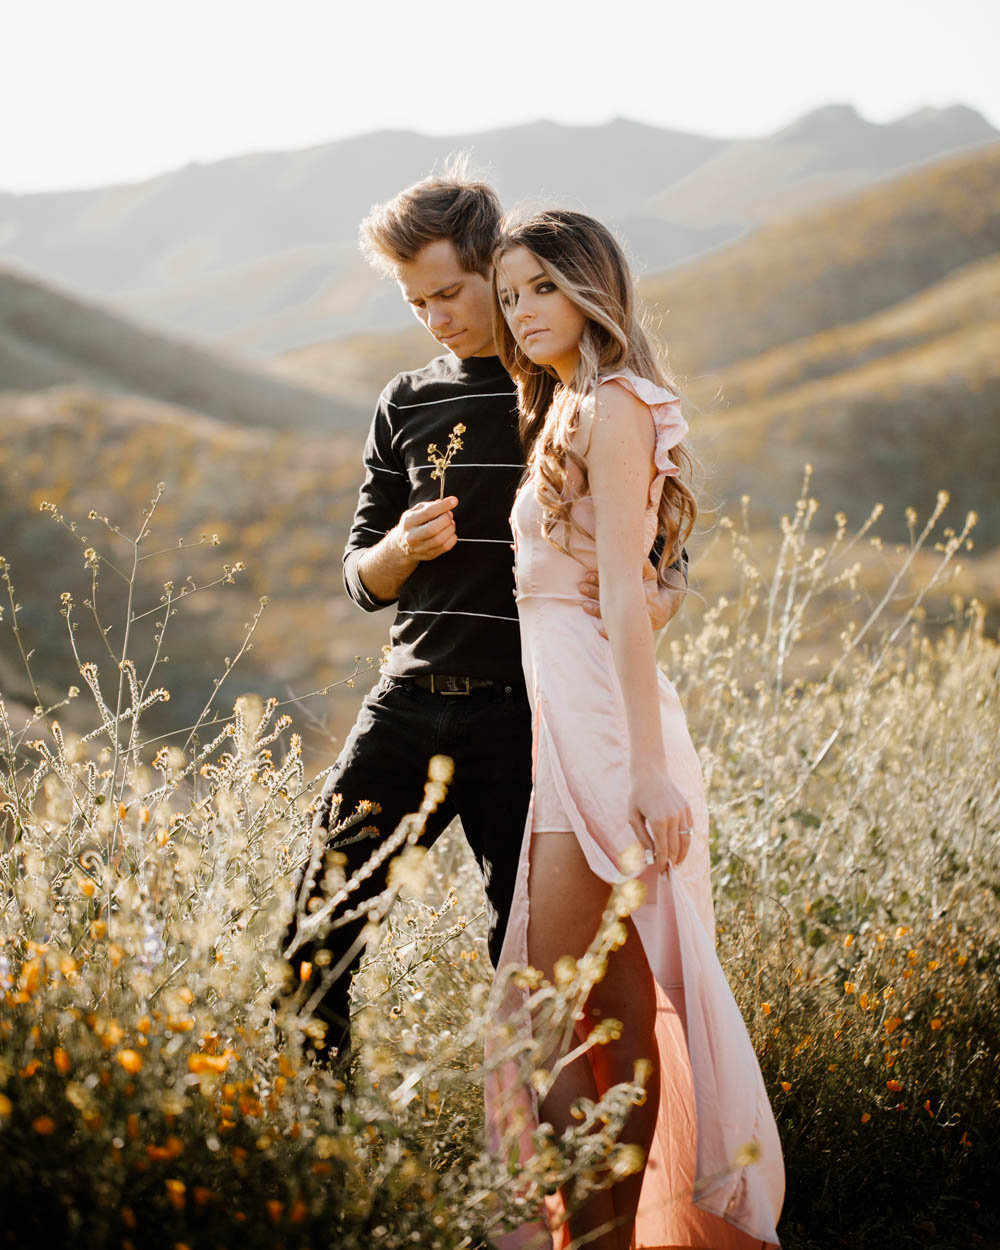 San Diego top 7 amazing engagement session locations walker canyon super bloom